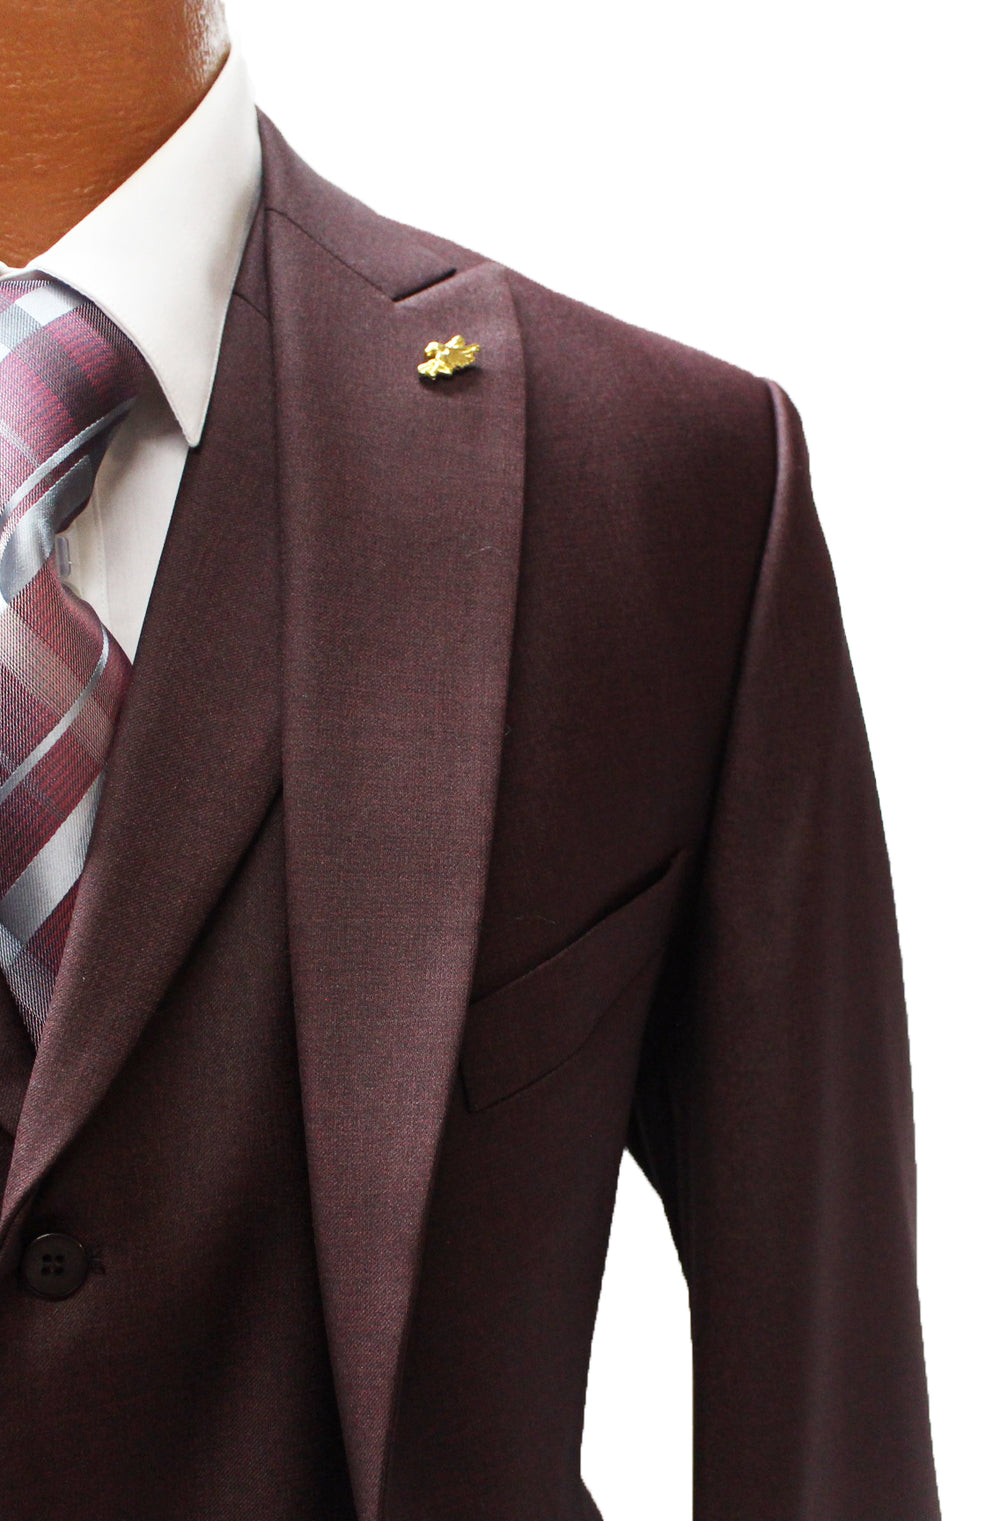 Pett Burgundy Vested Classic Fit Suit